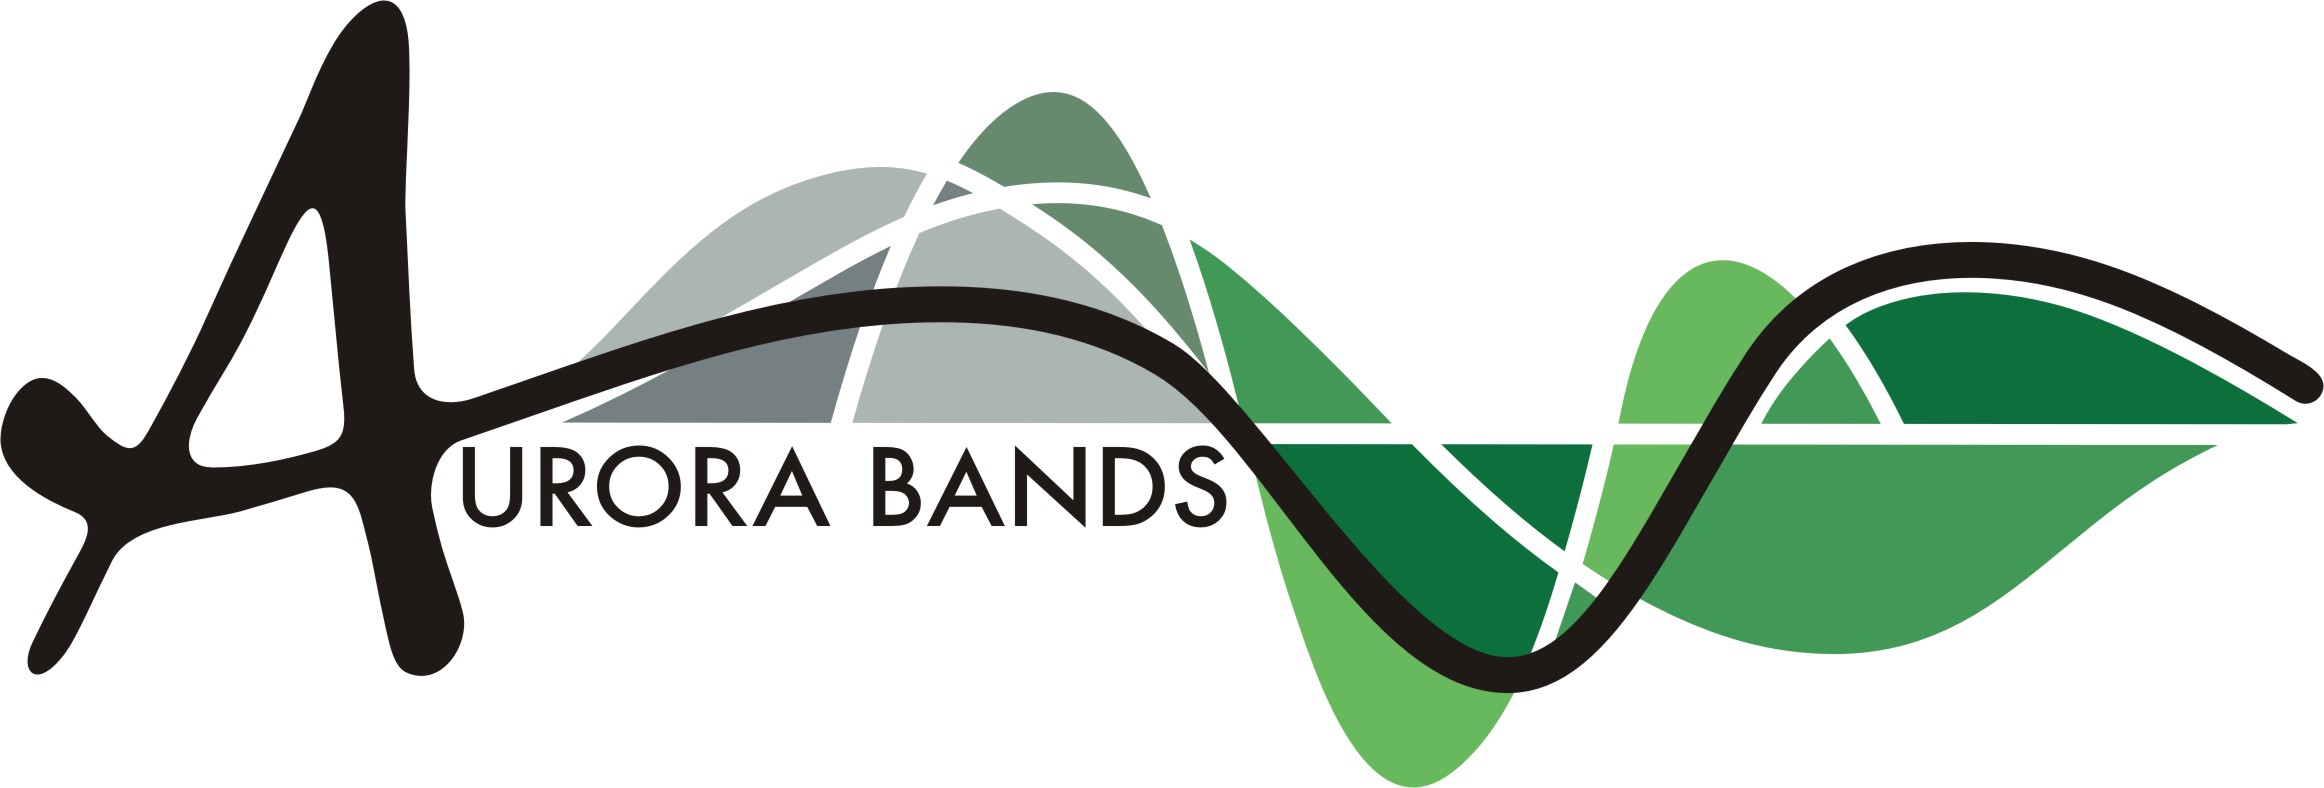 Aurora Band Logo in green and grey